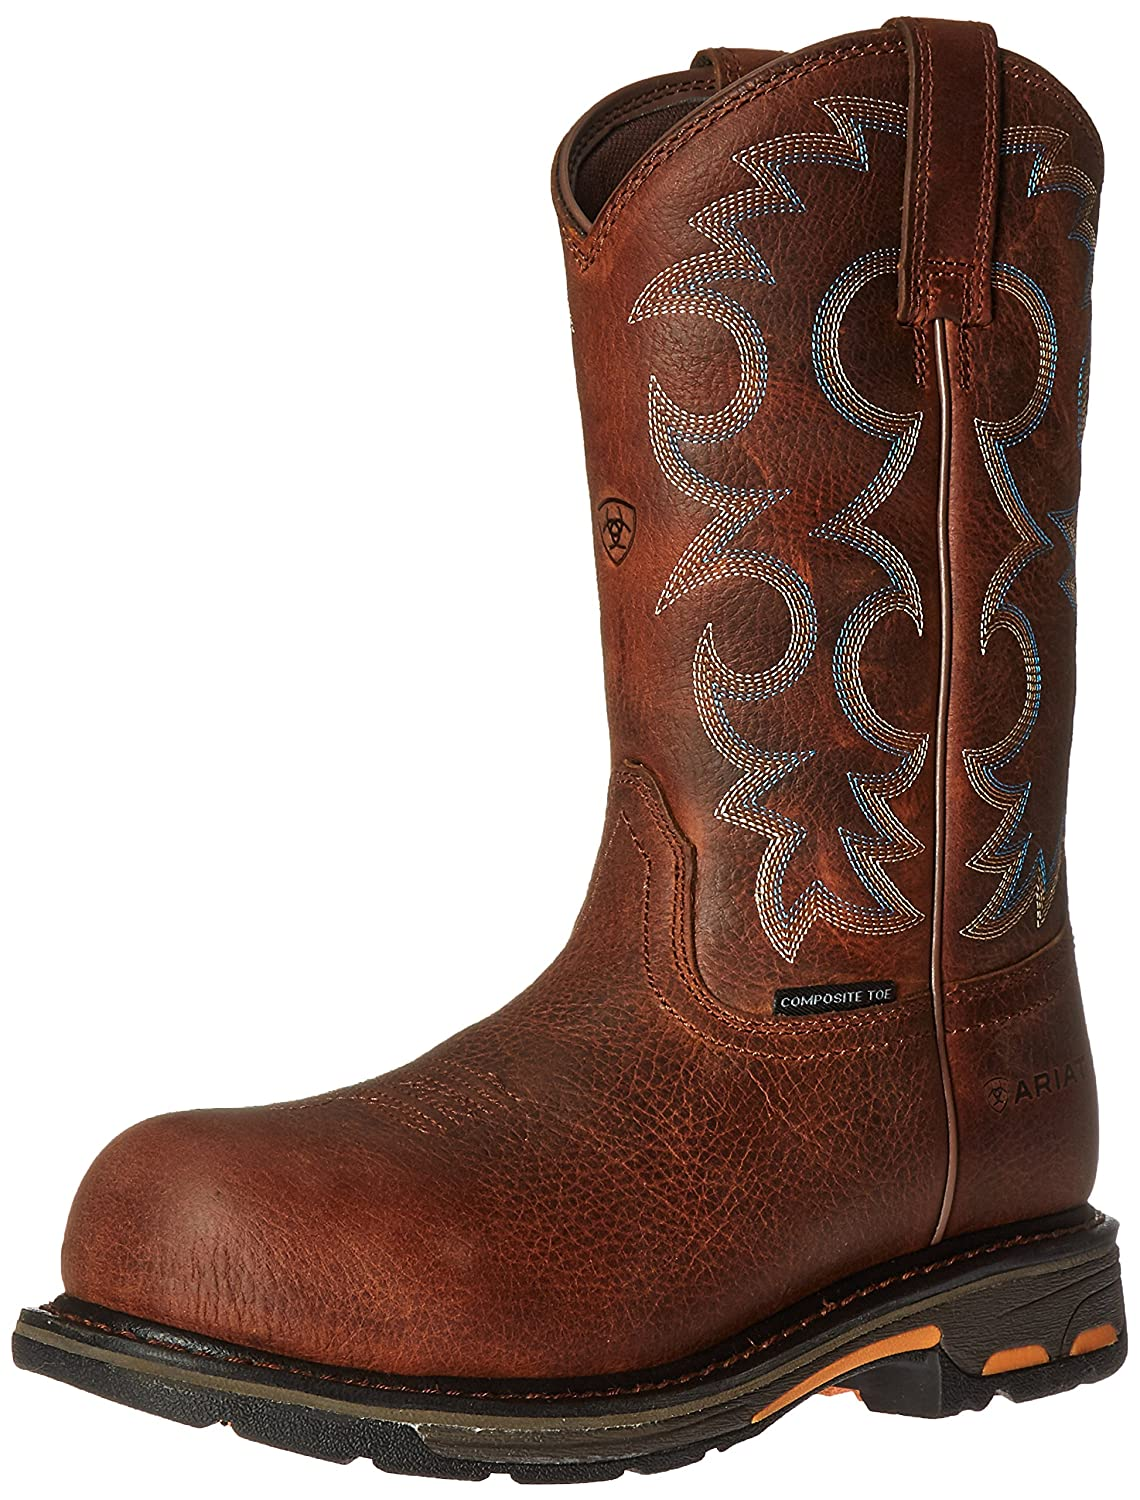 Ariat レディース Workhog Composite Toe B01BQT6M6Y 7.5 B(M) US|Nutty Brown Nutty Brown 7.5 B(M) US